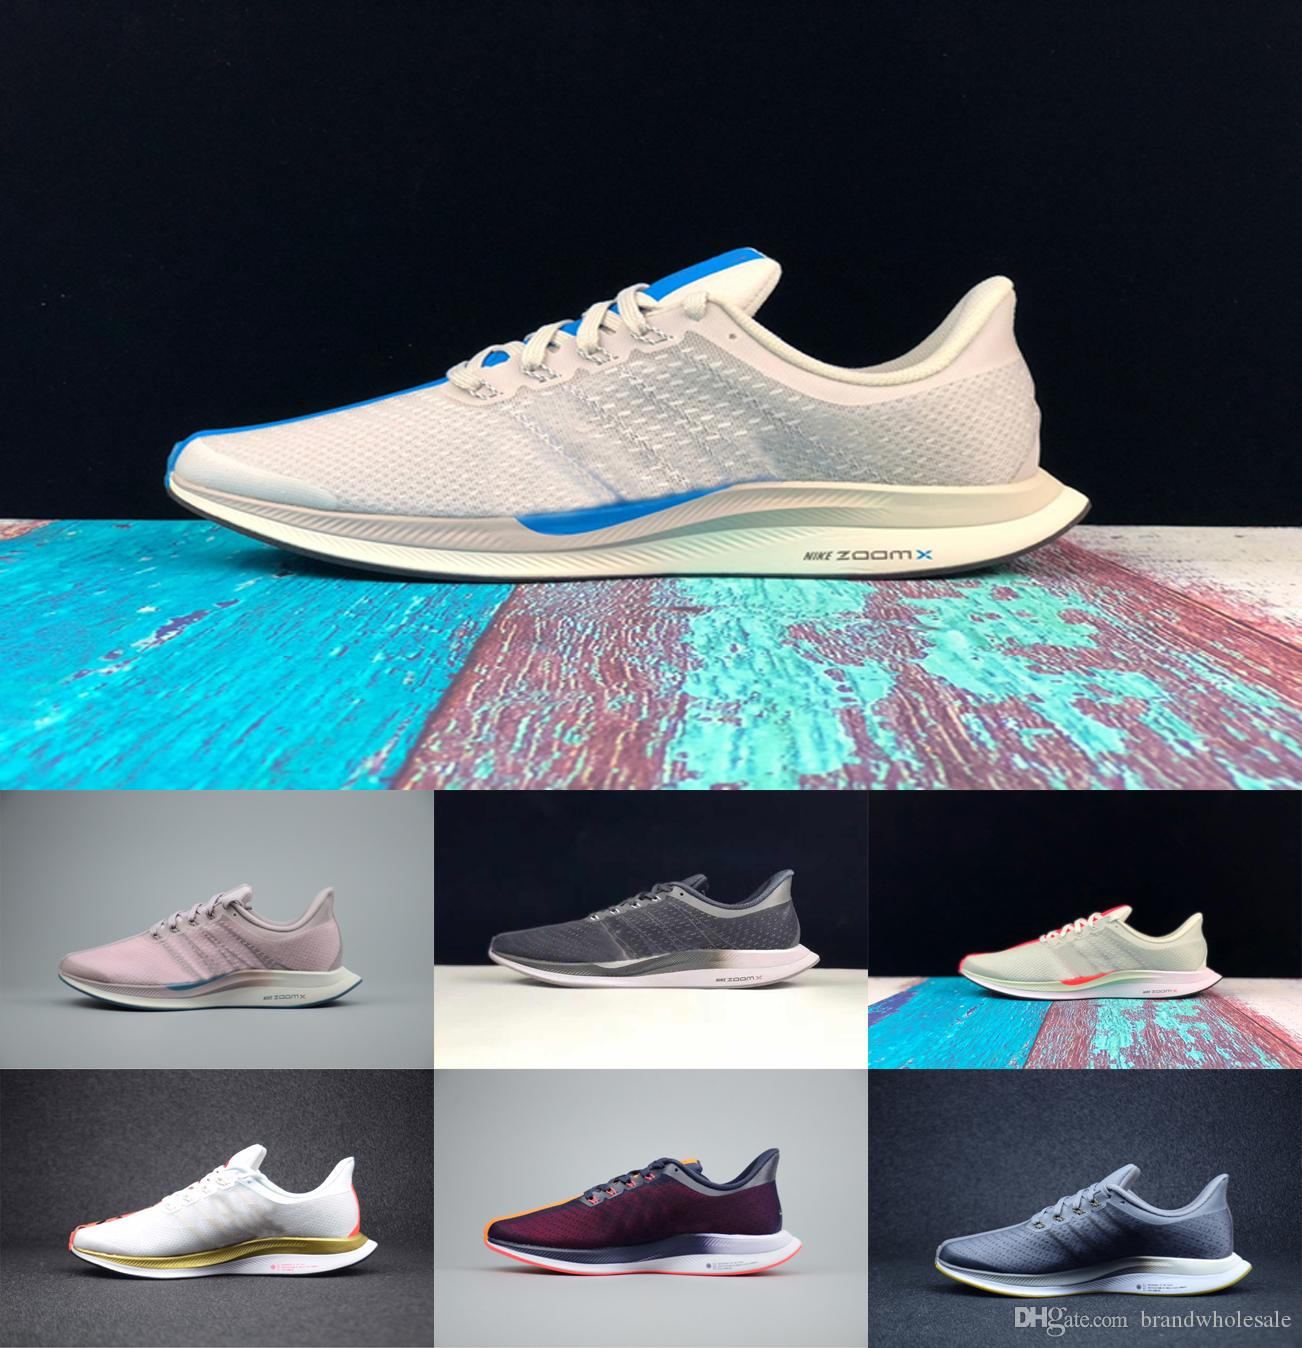 buy popular 2fd99 eaaba New Arrival Air Zoom X Pegasus 35 Turbo 2.0 x React Mens Womens Running  Shoes P35X Sports Brand Zapatillas Sneakers Trainers Vaporfly